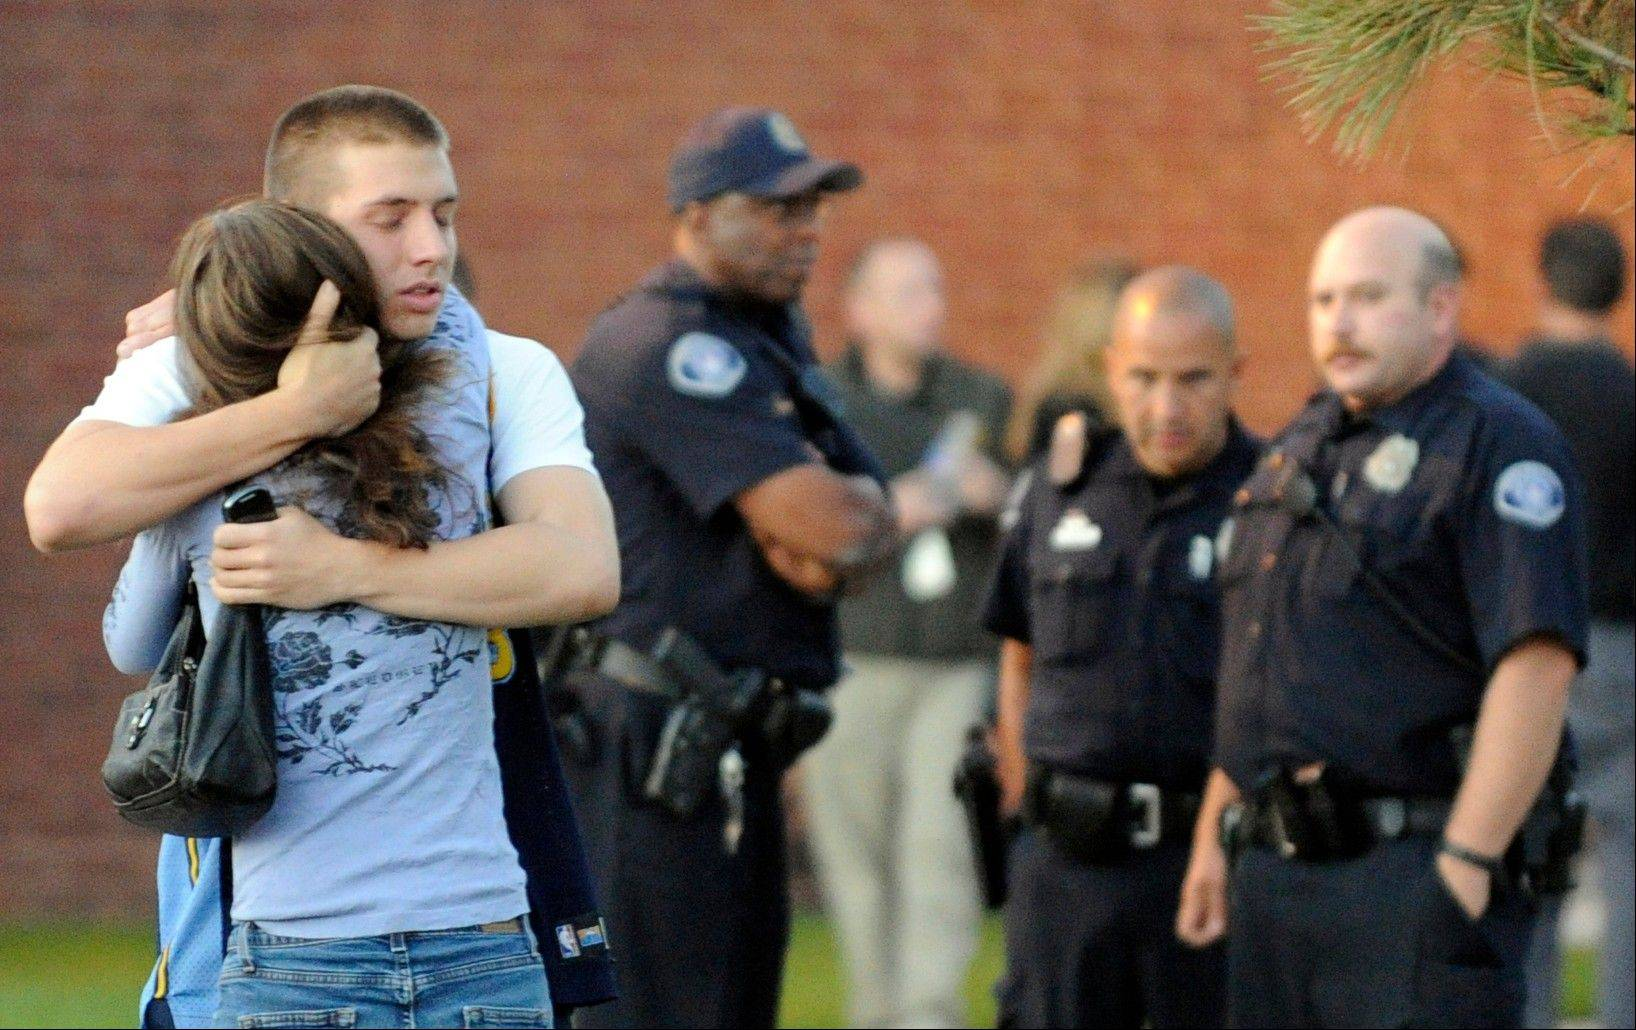 Eyewitness Jacob Stevens, 18, hugs his mother, Tammi Stevens, after being interviewed by police Friday outside Gateway High School where witnesses were brought for questioning after a mass shooting at a movie theater in Aurora, Colo.